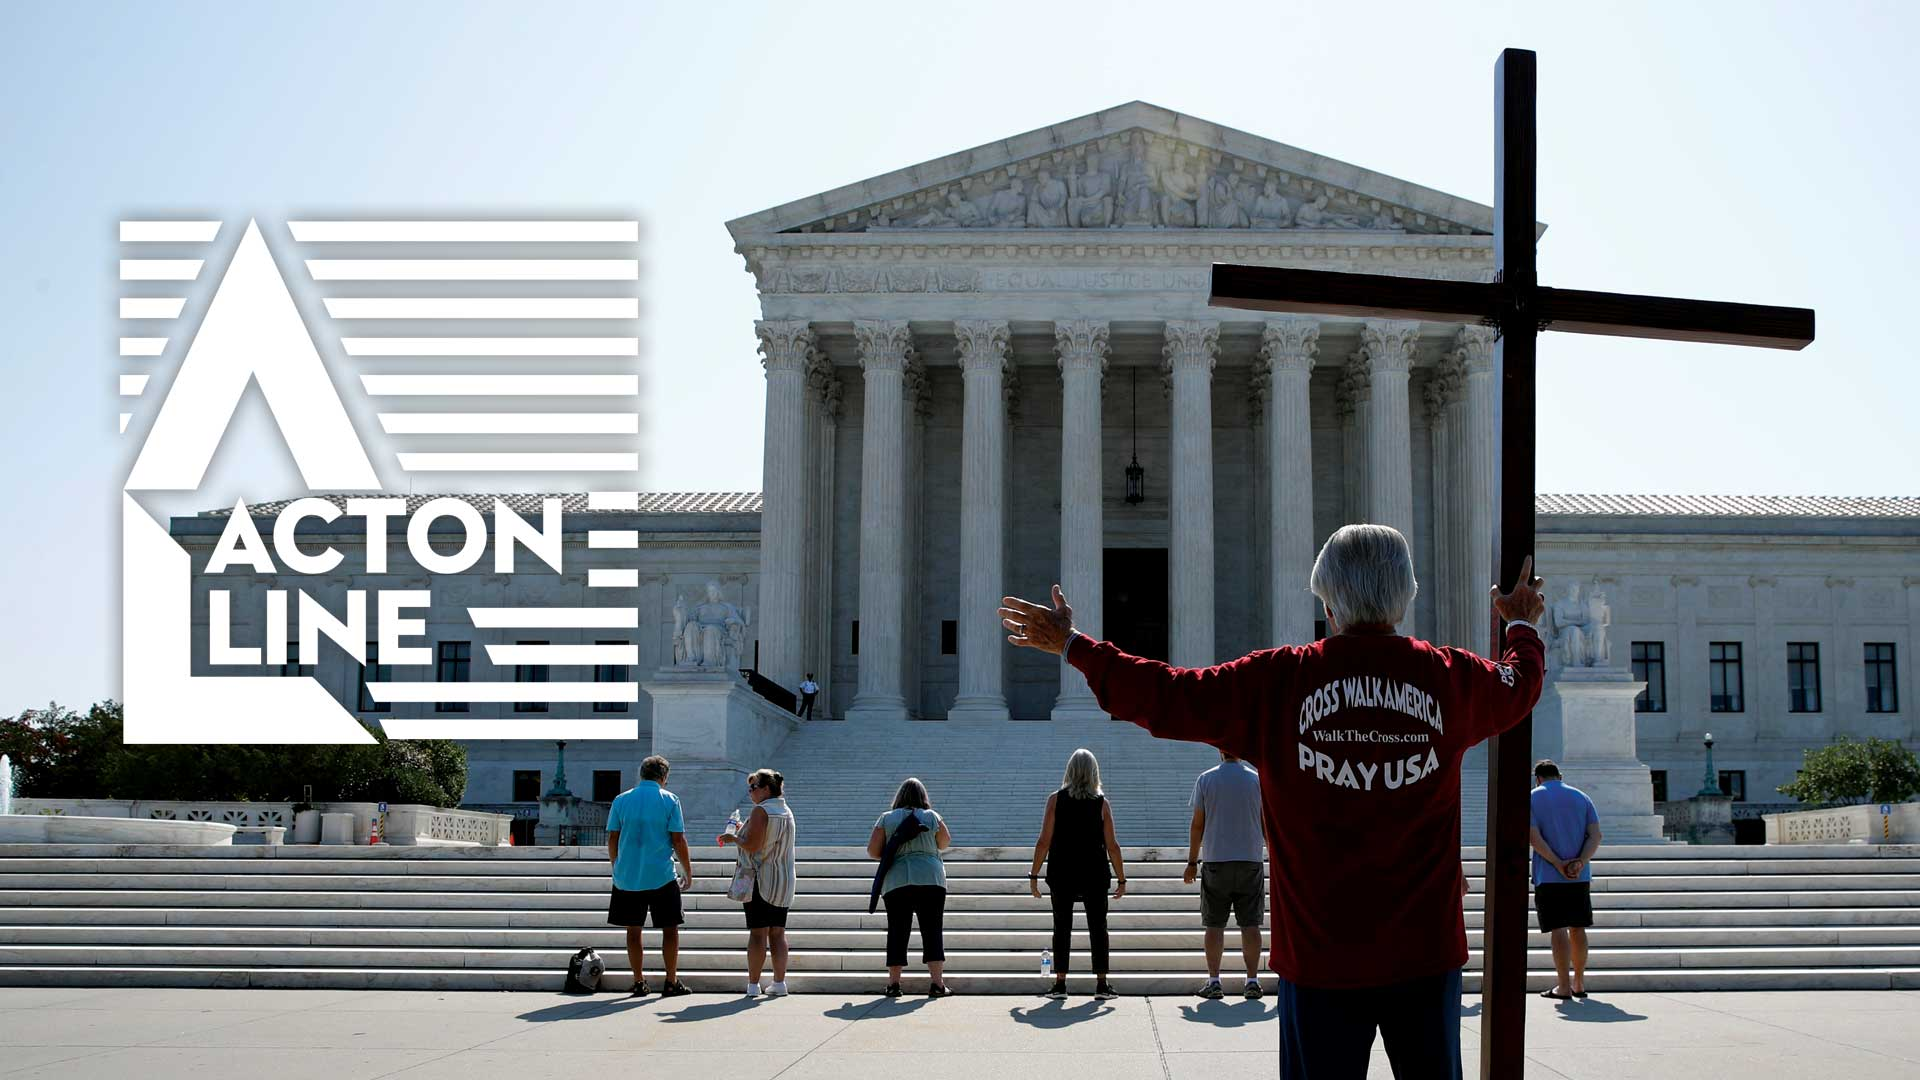 Man praying outside the SCOTUS building